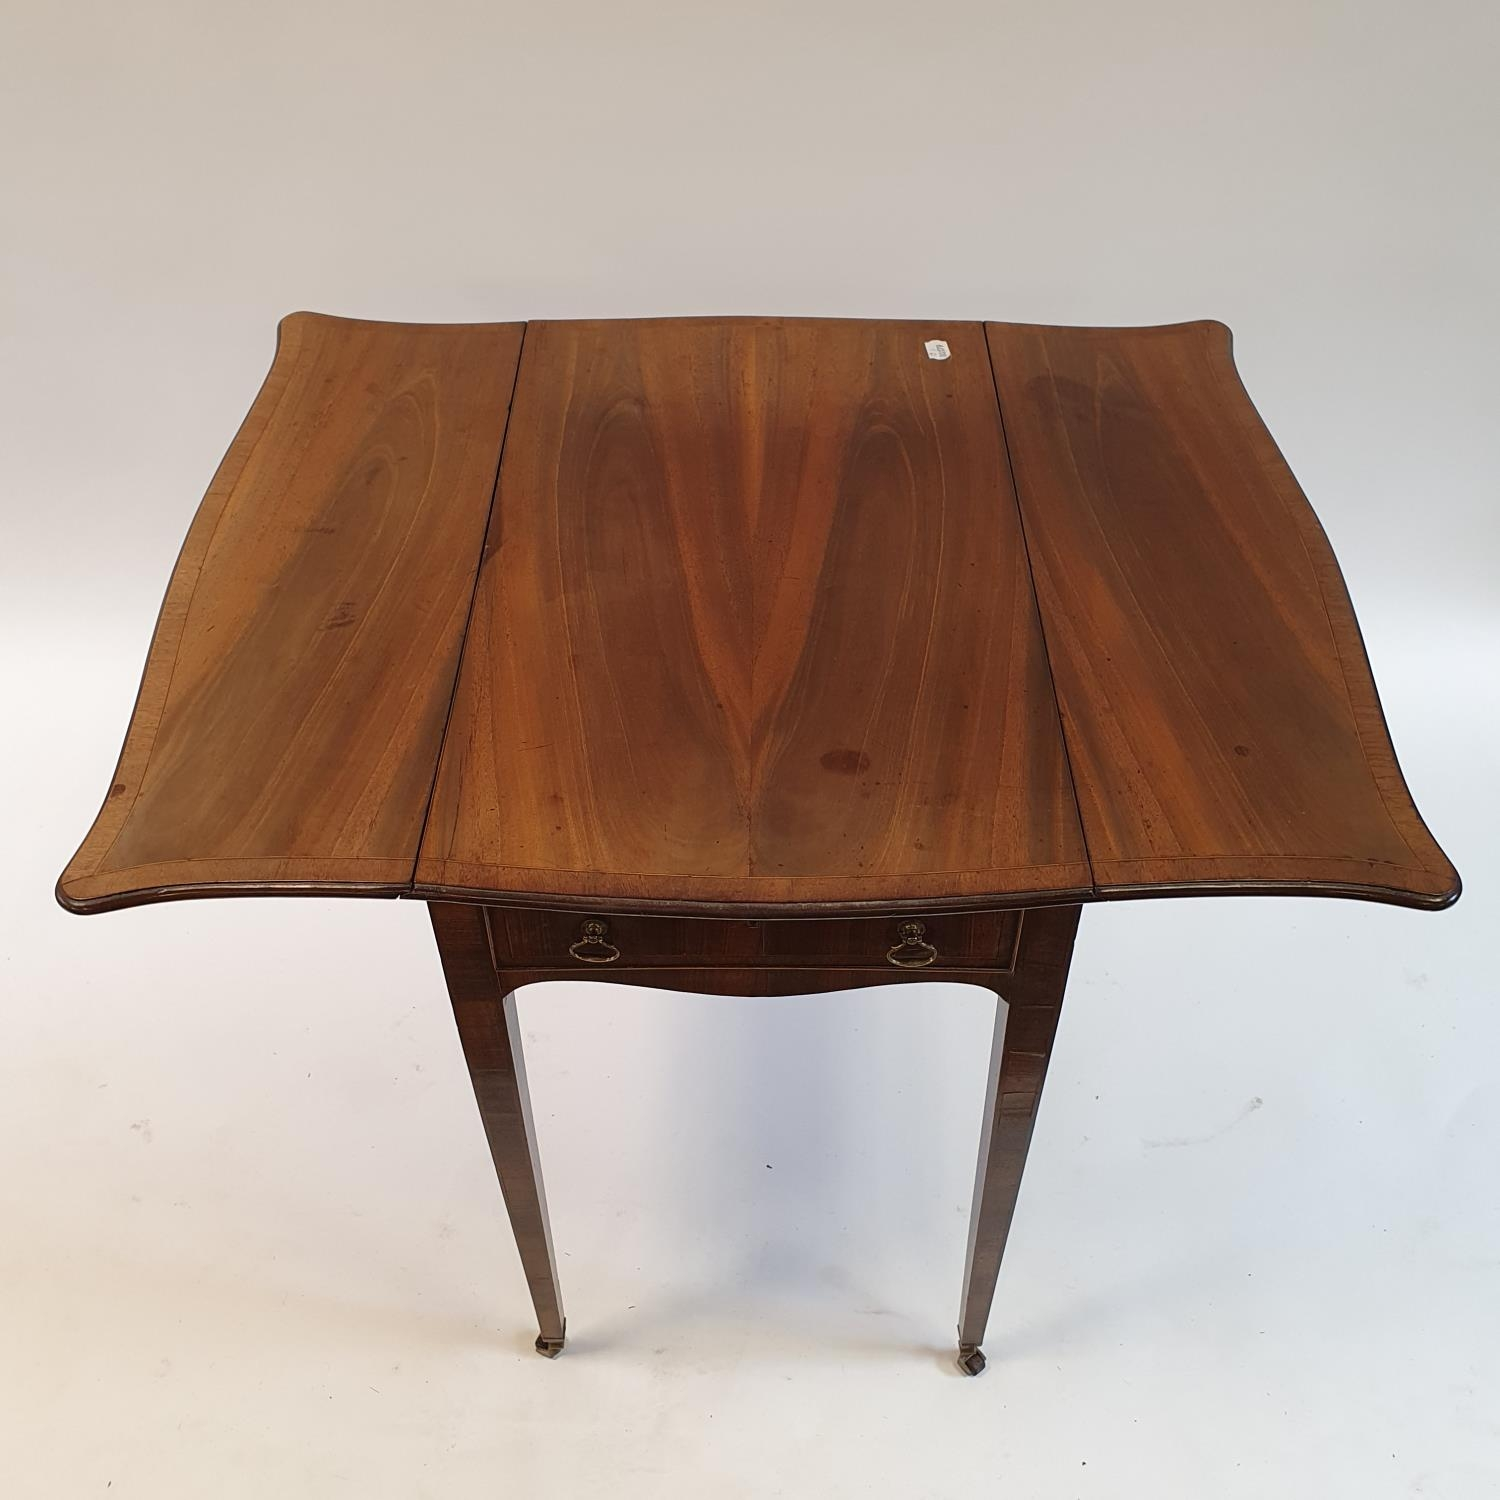 A George III mahogany butterfly top Pembroke table, of small proportions, crossbanded in rosewood, - Image 3 of 3